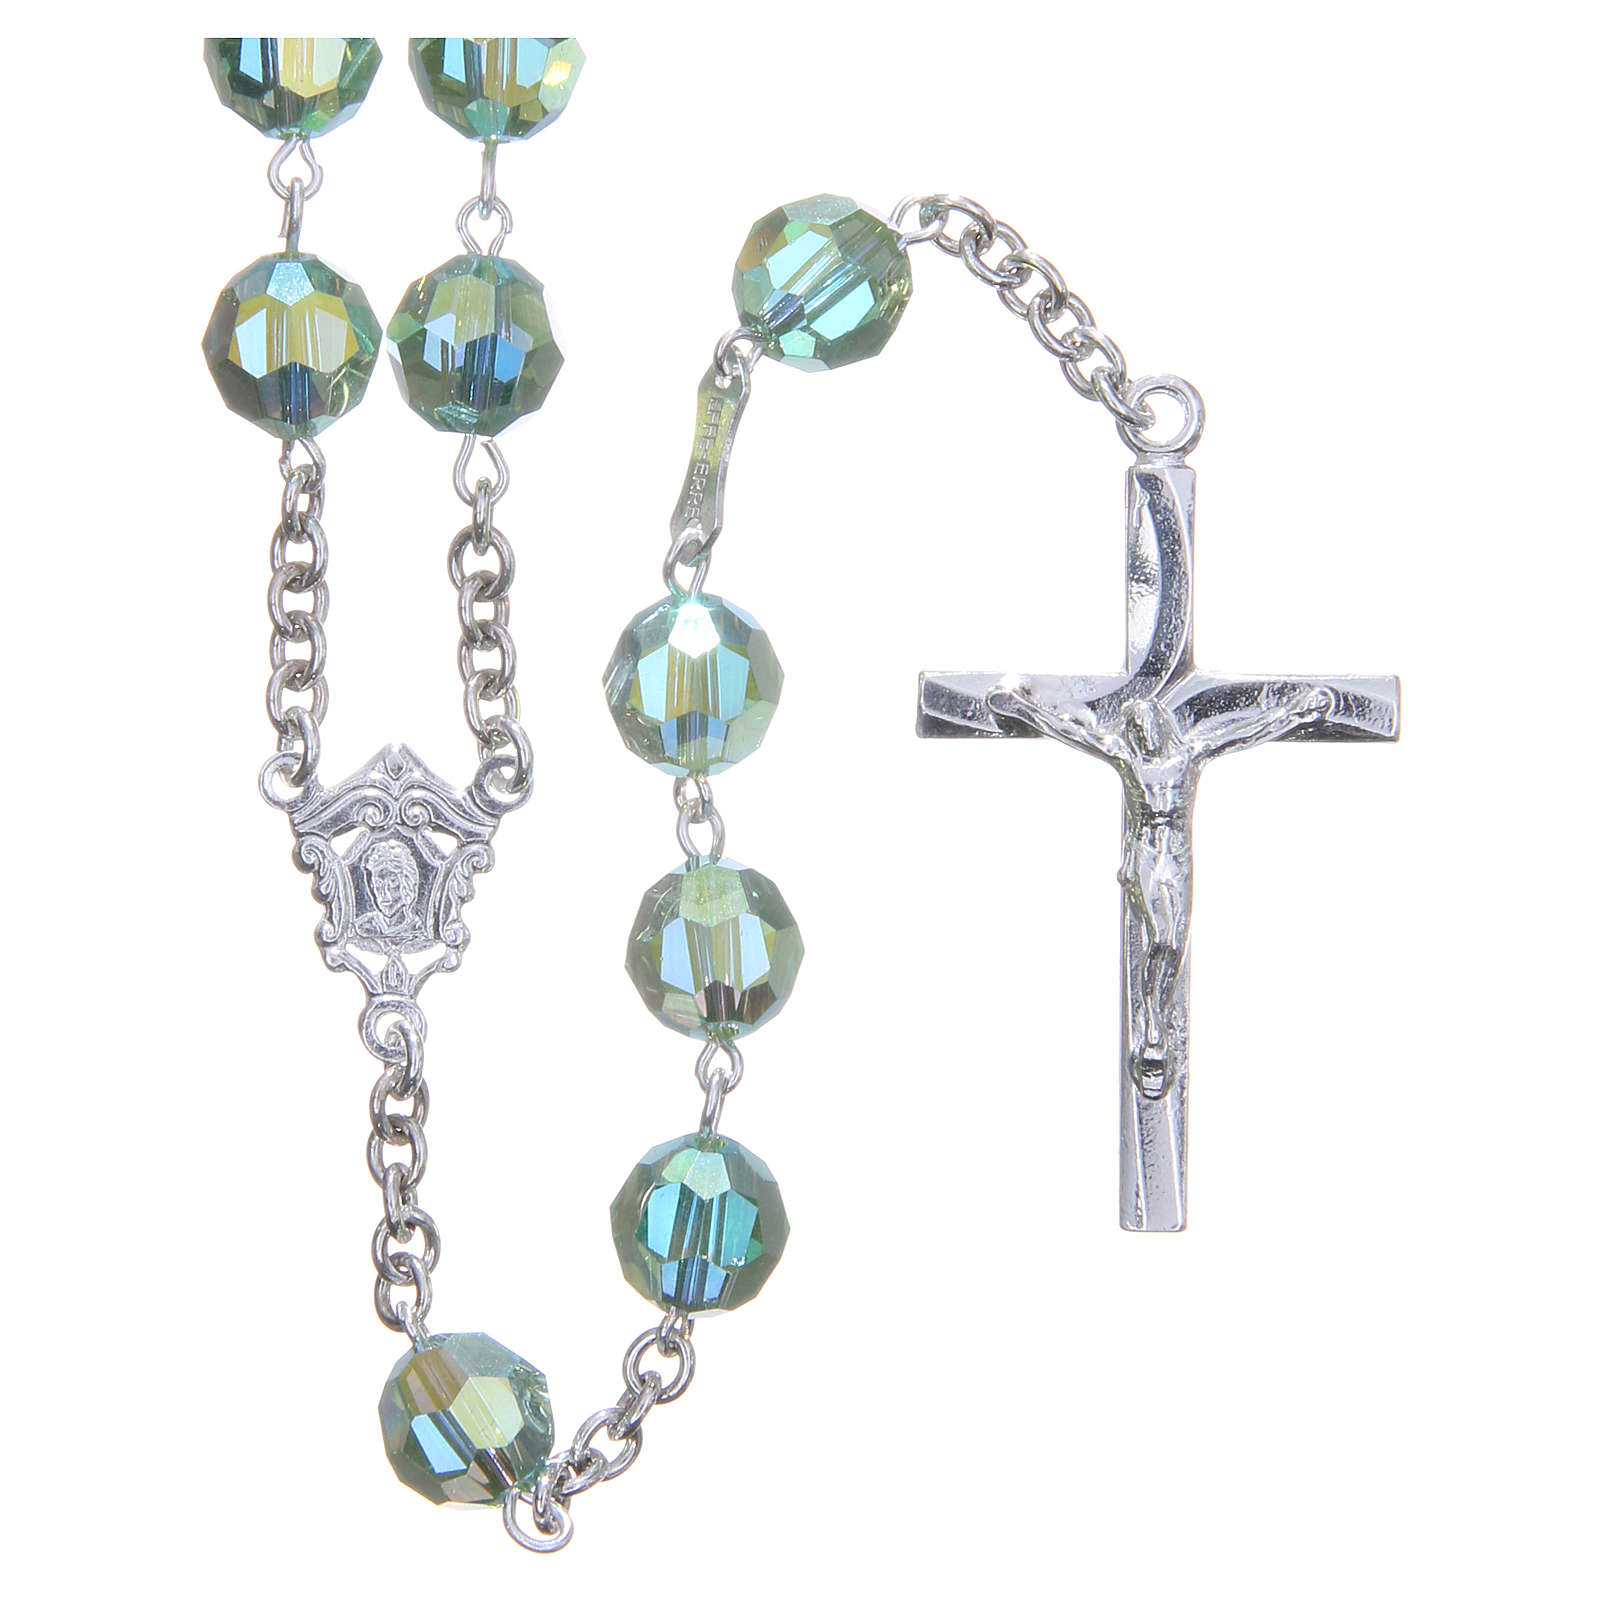 Rosary in 925 silver and green Swarowski crystal grains measuring 8mm 4